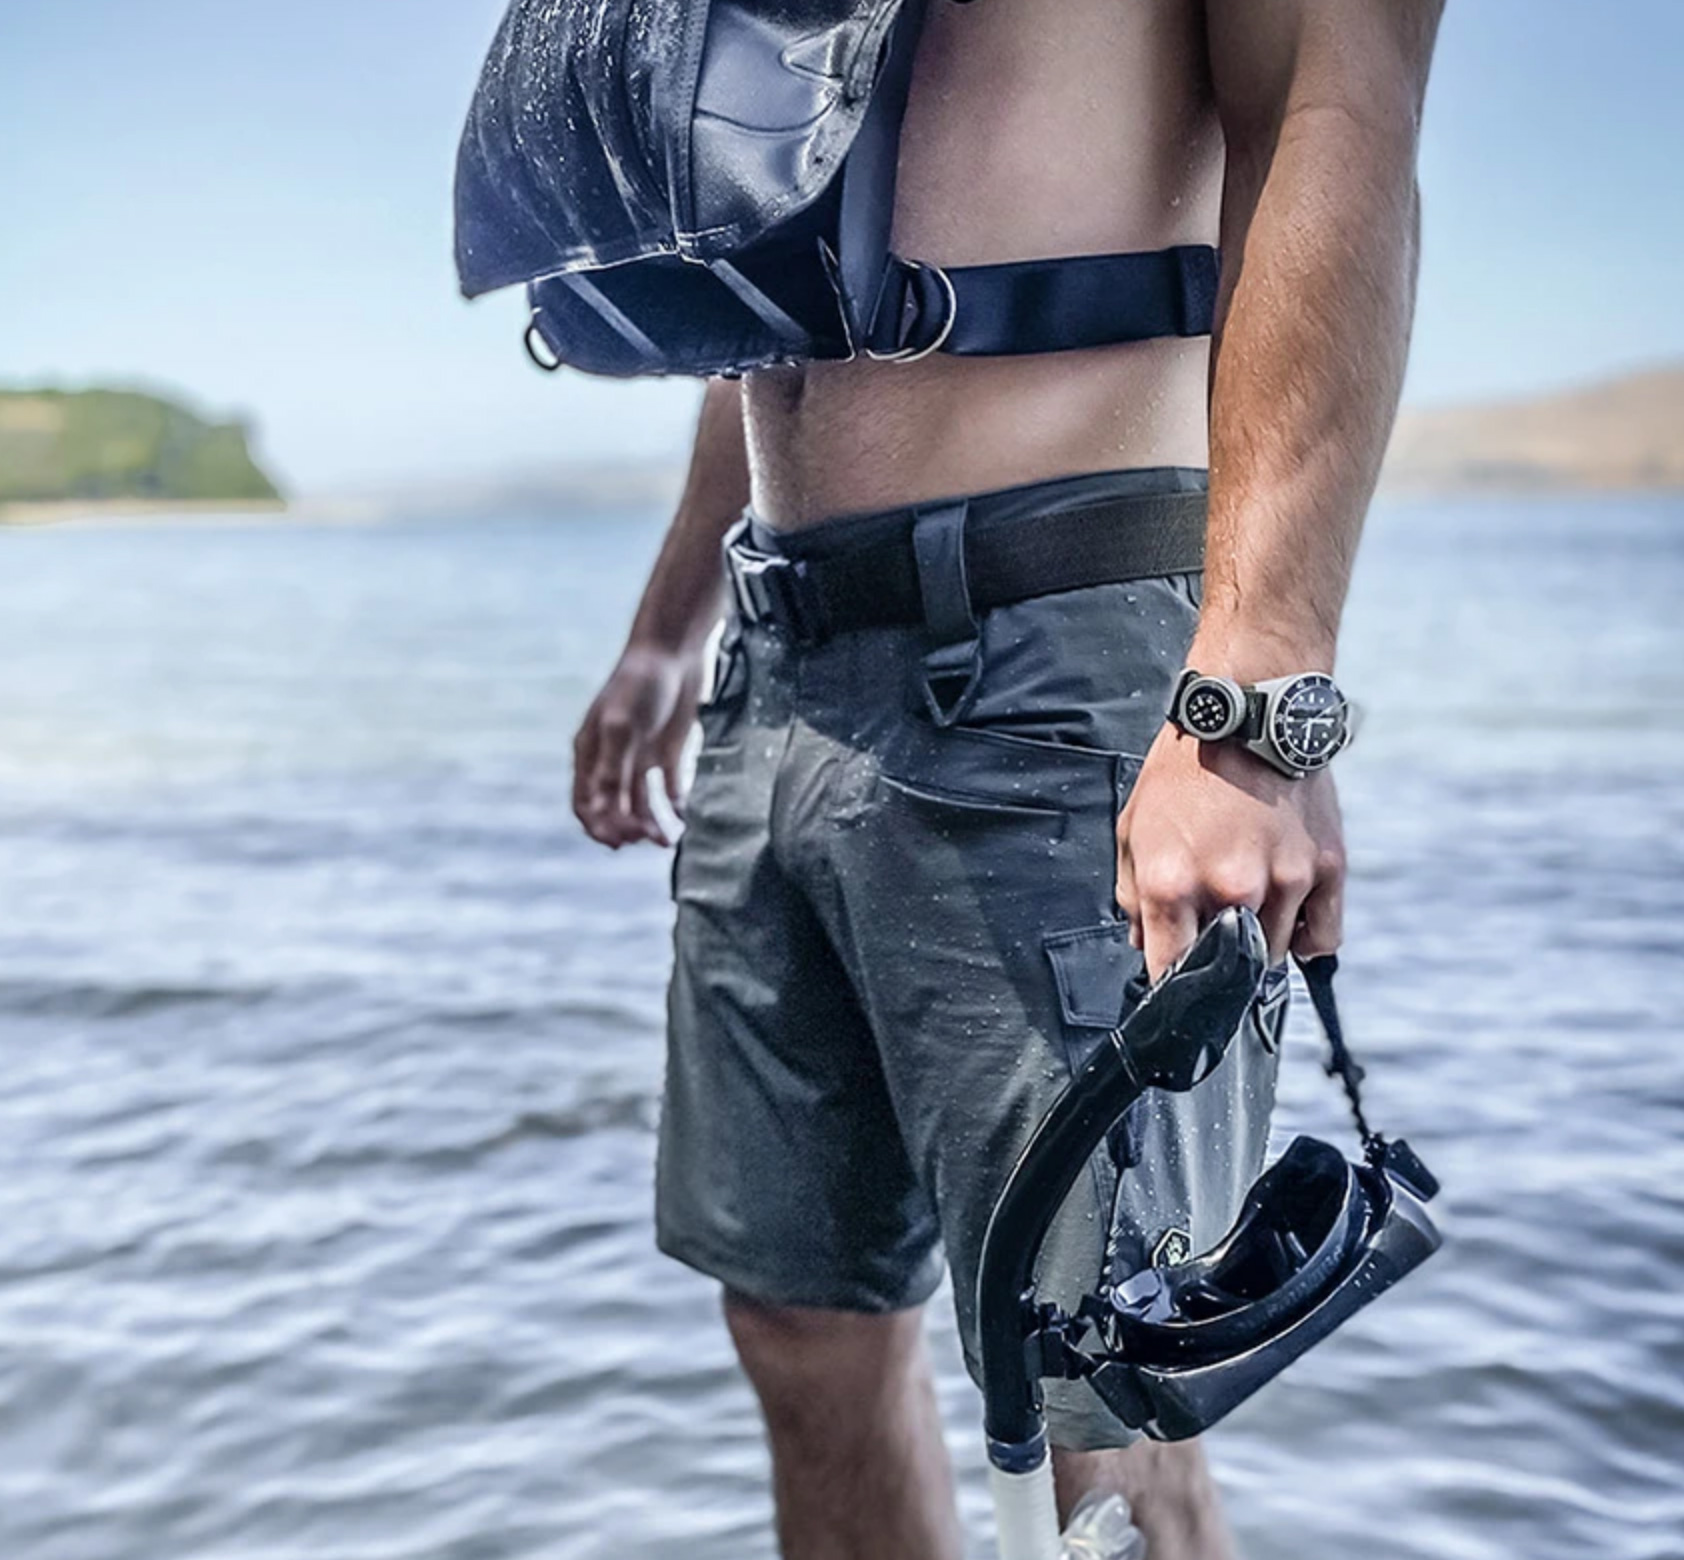 Your Cargo Shorts are Not as Gnarly as These at werd.com